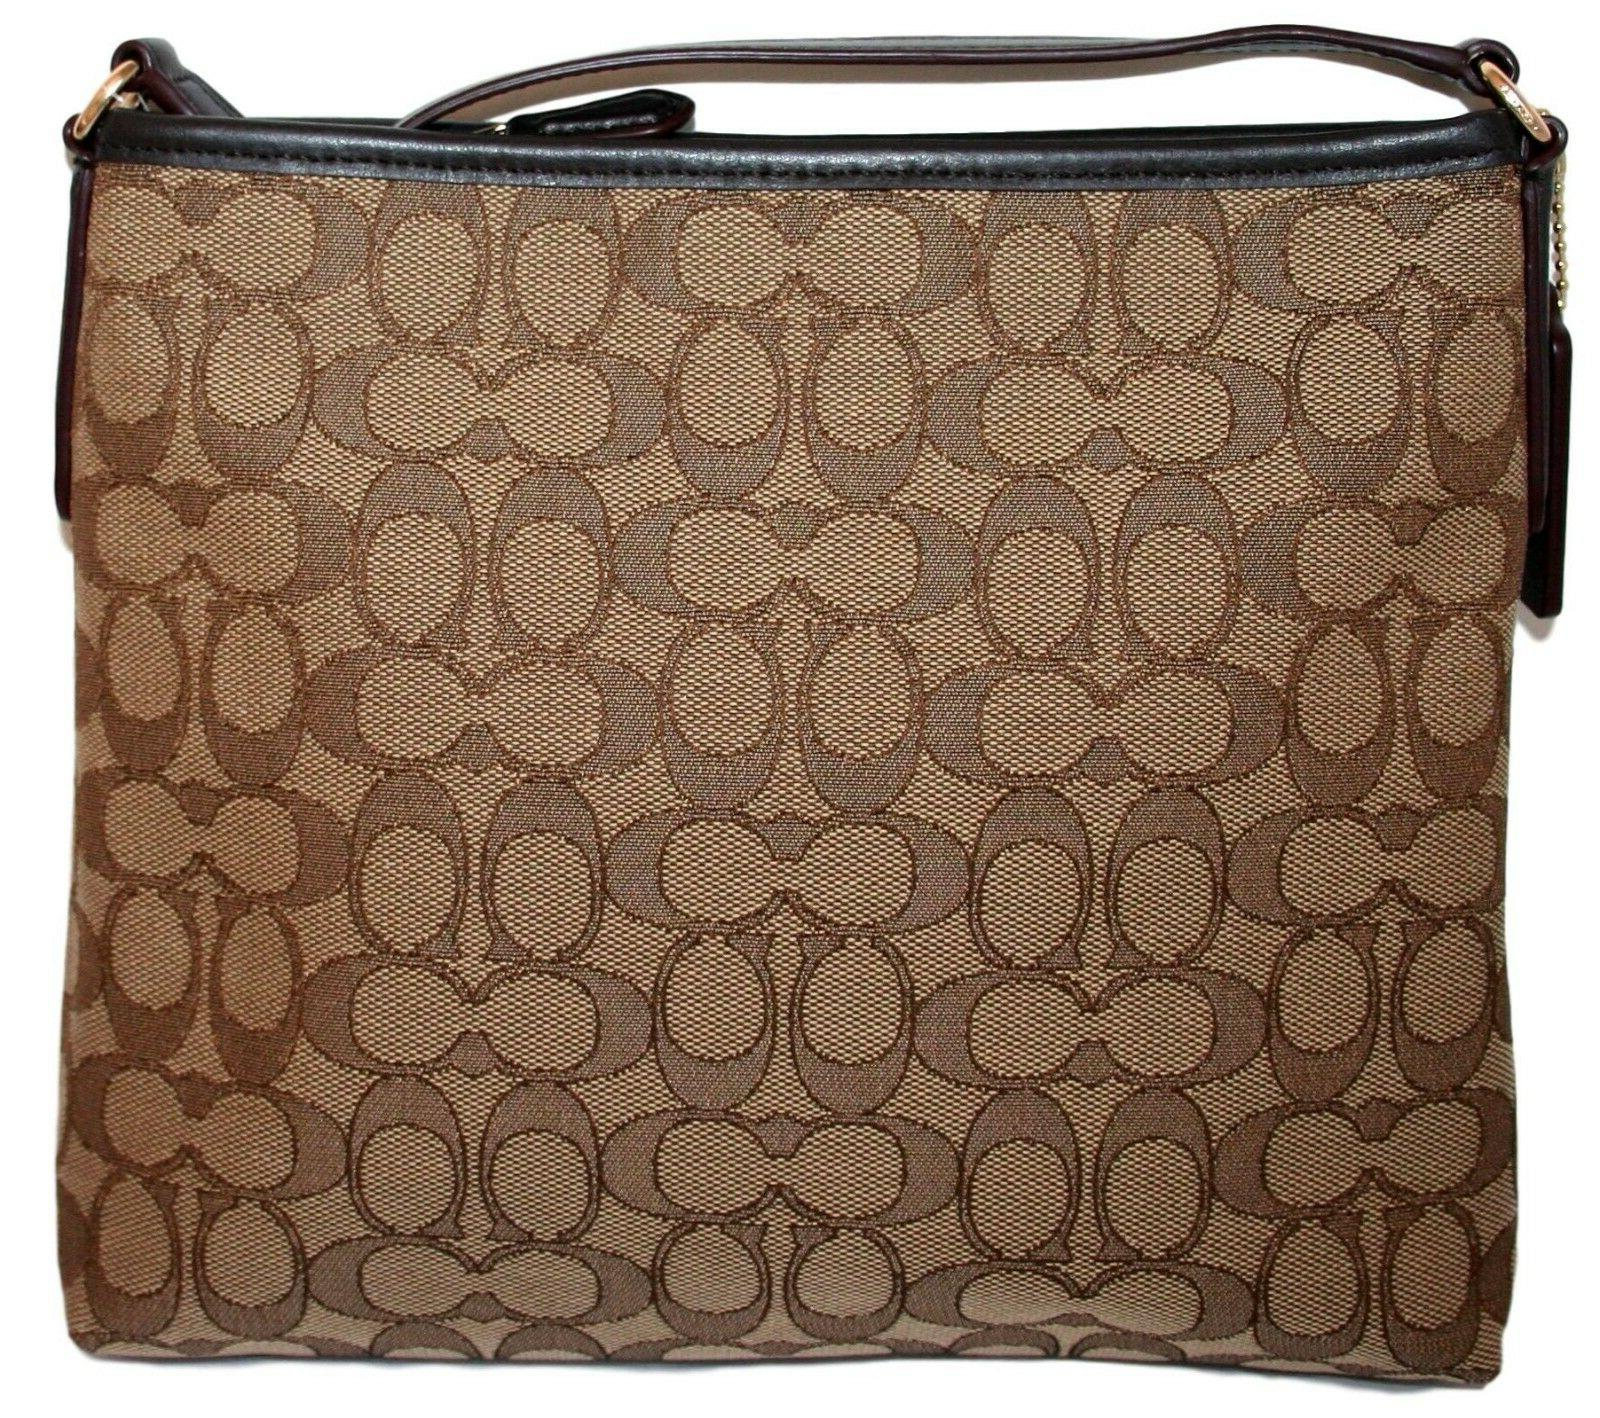 Coach Signature Jacquard Bag F29960